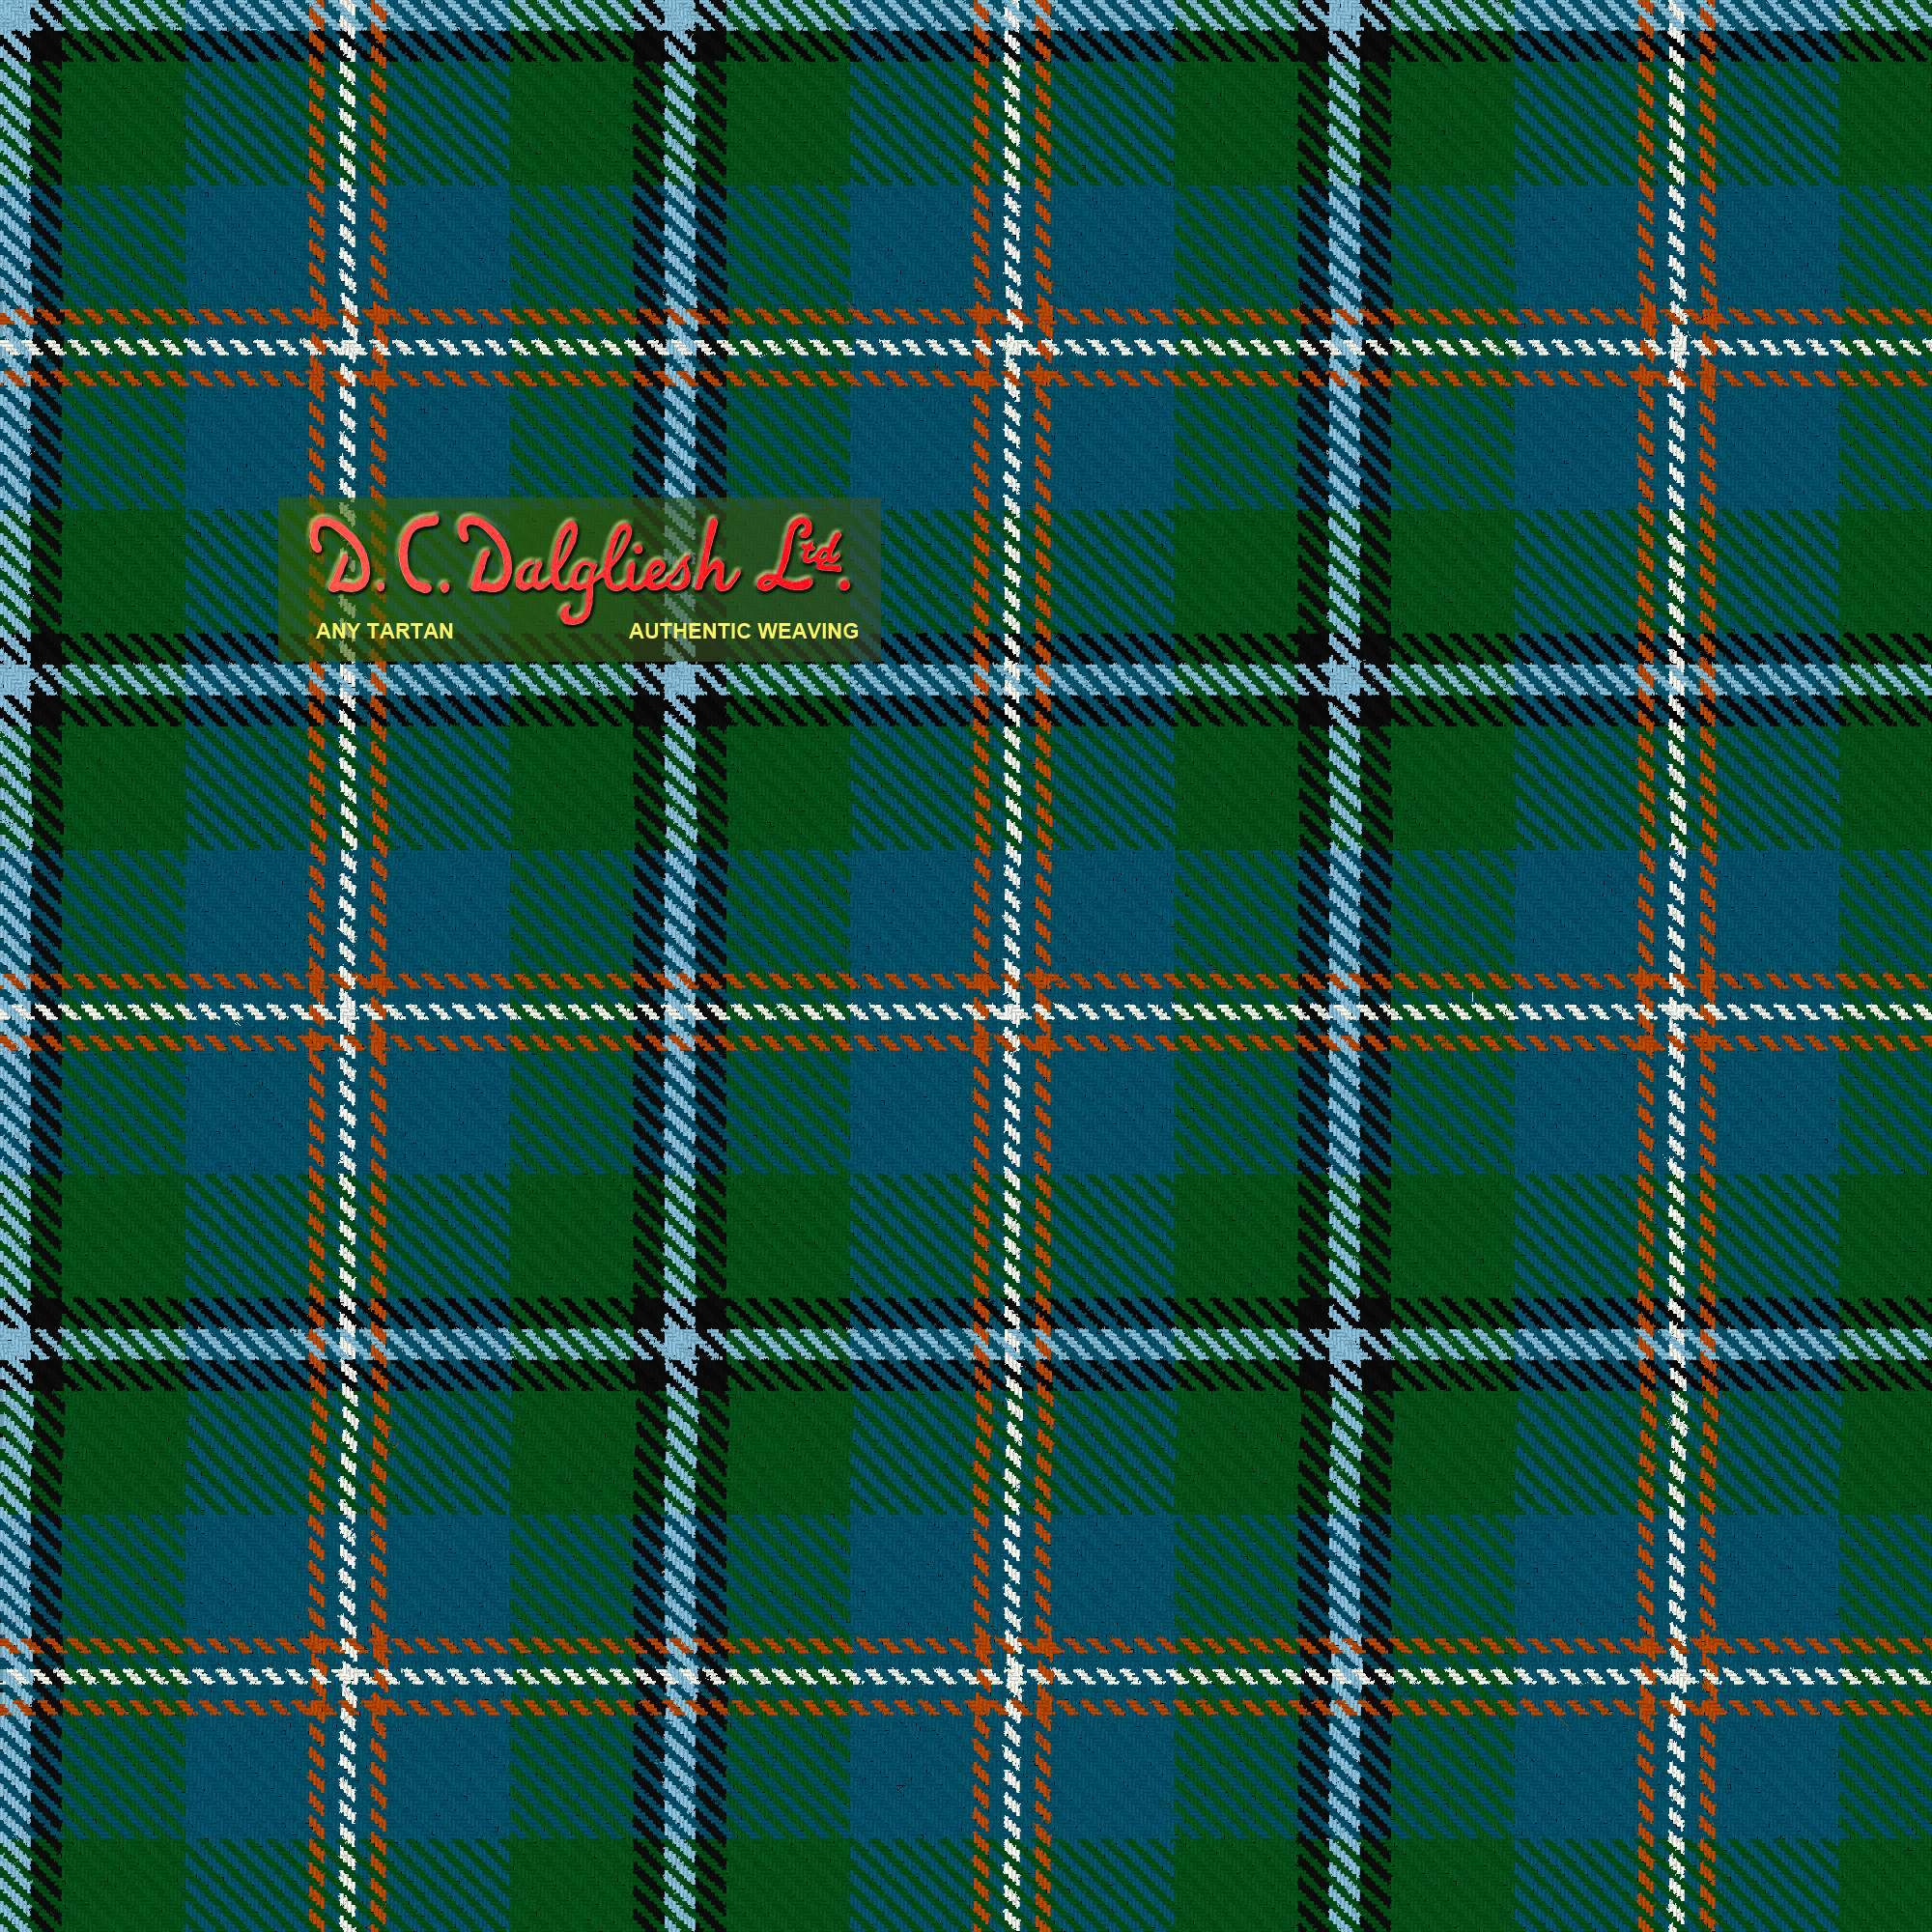 Lundy Fabric By Dc Dalgliesh Hand Crafted Tartans